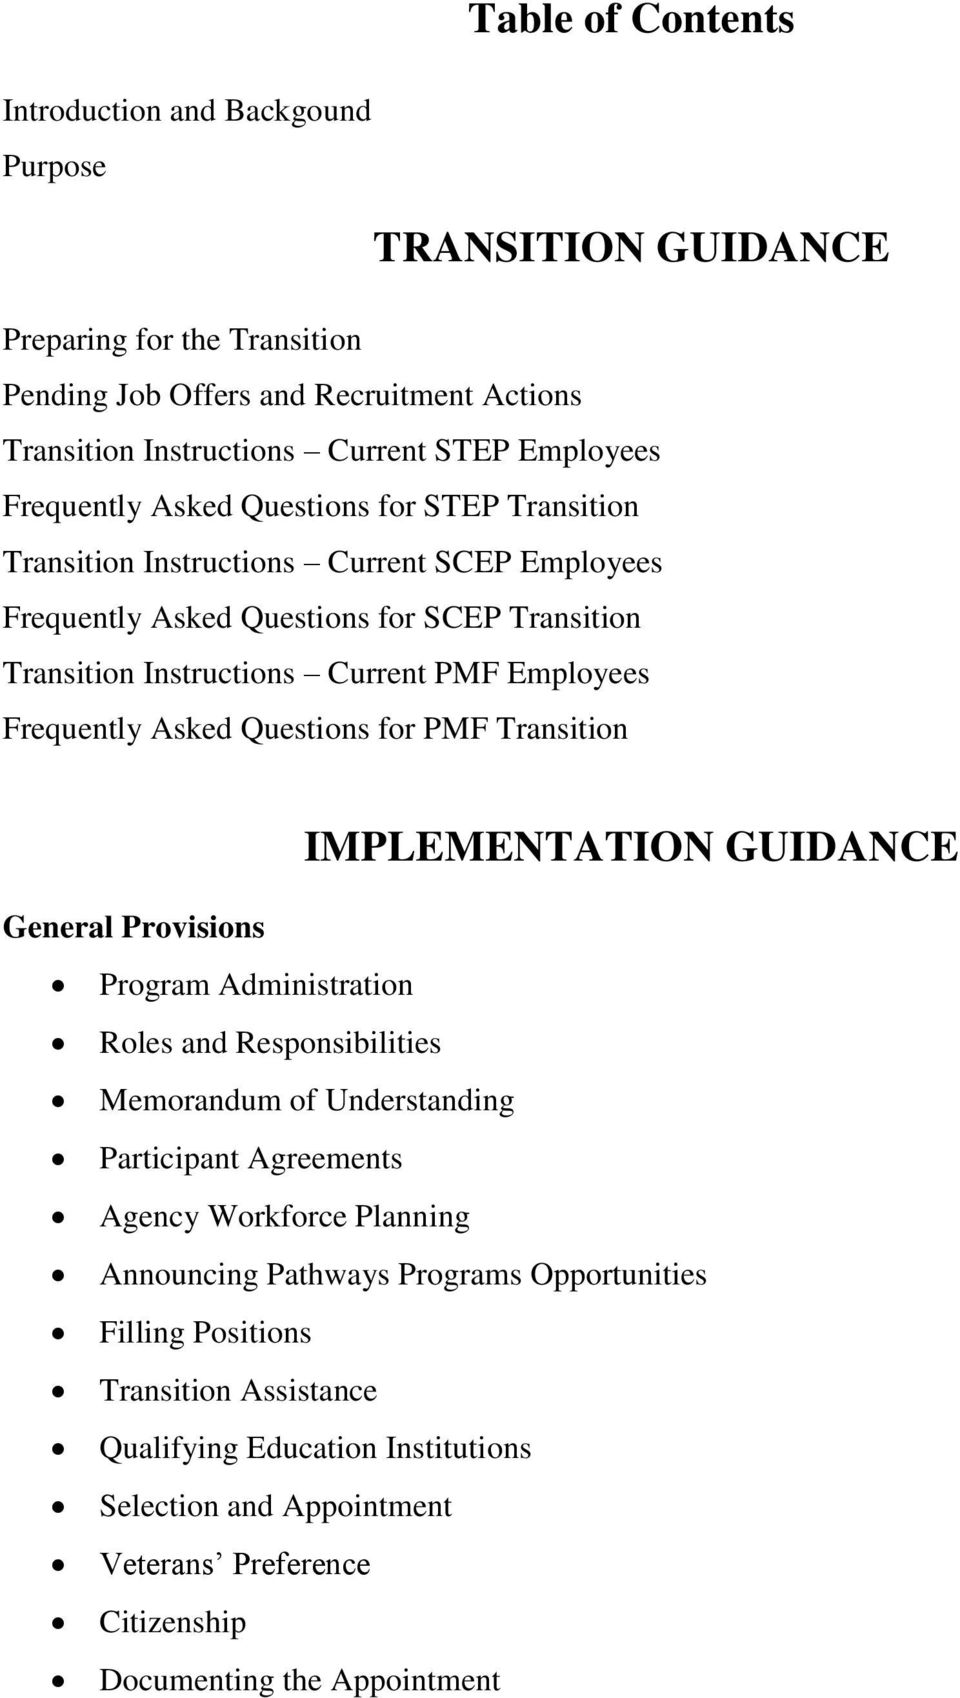 Asked Questions for PMF Transition IMPLEMENTATION GUIDANCE General Provisions Program Administration Roles and Responsibilities Memorandum of Understanding Participant Agreements Agency Workforce